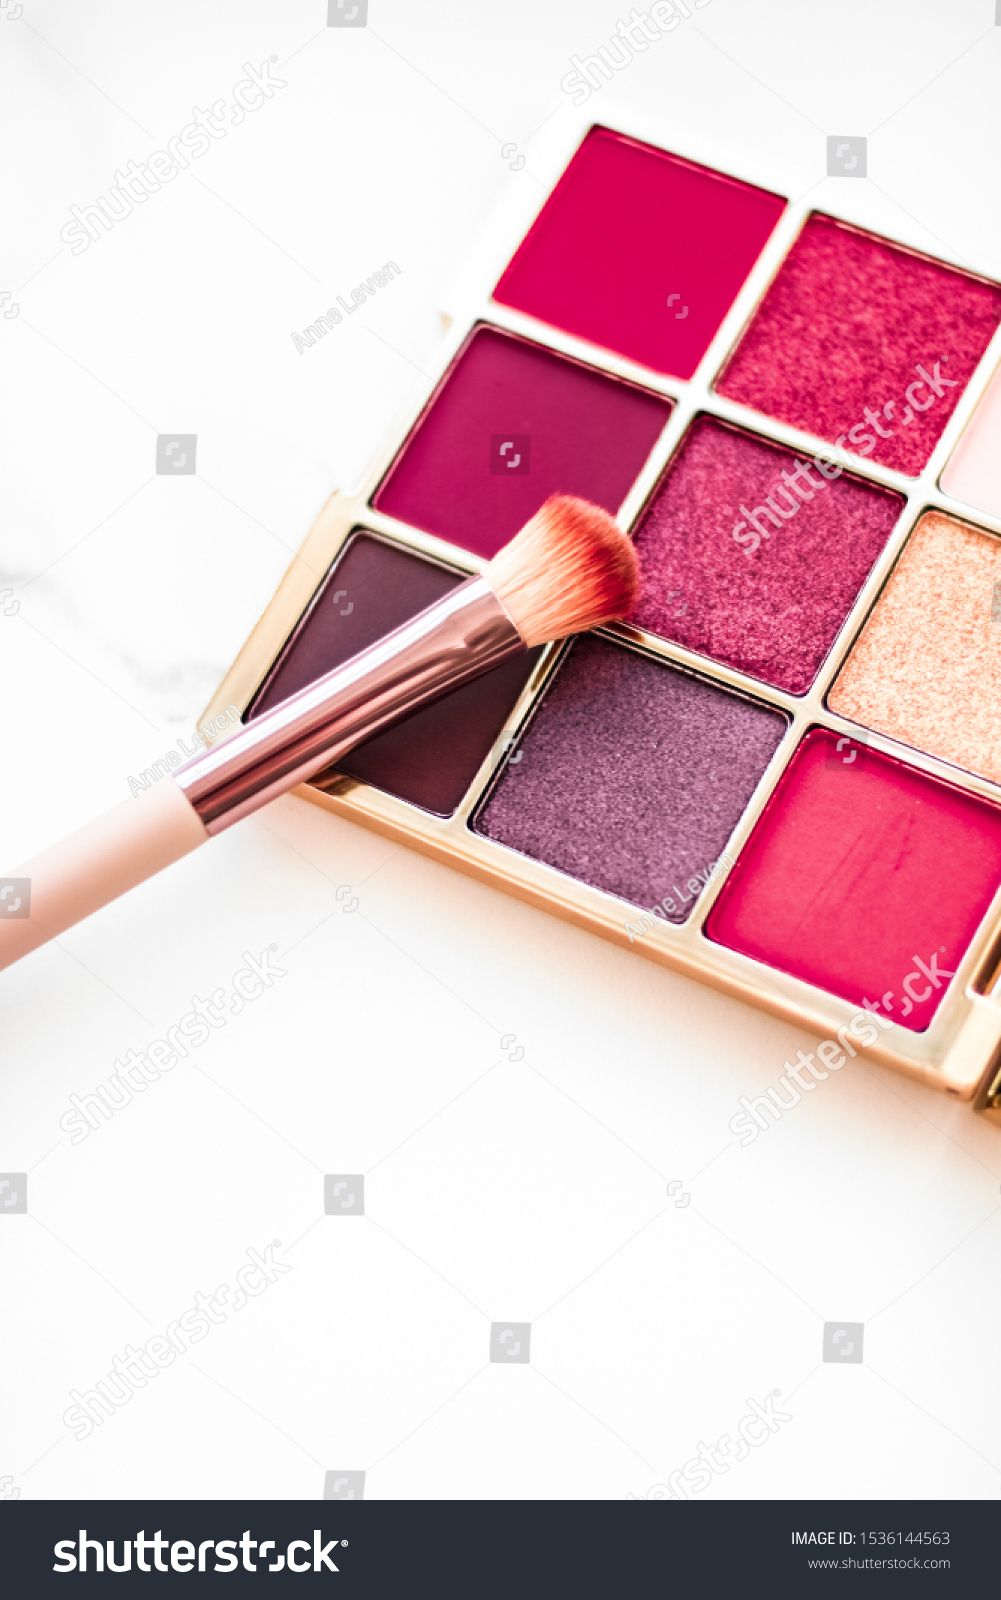 Cosmetic branding, fashion blog and glamour set concept